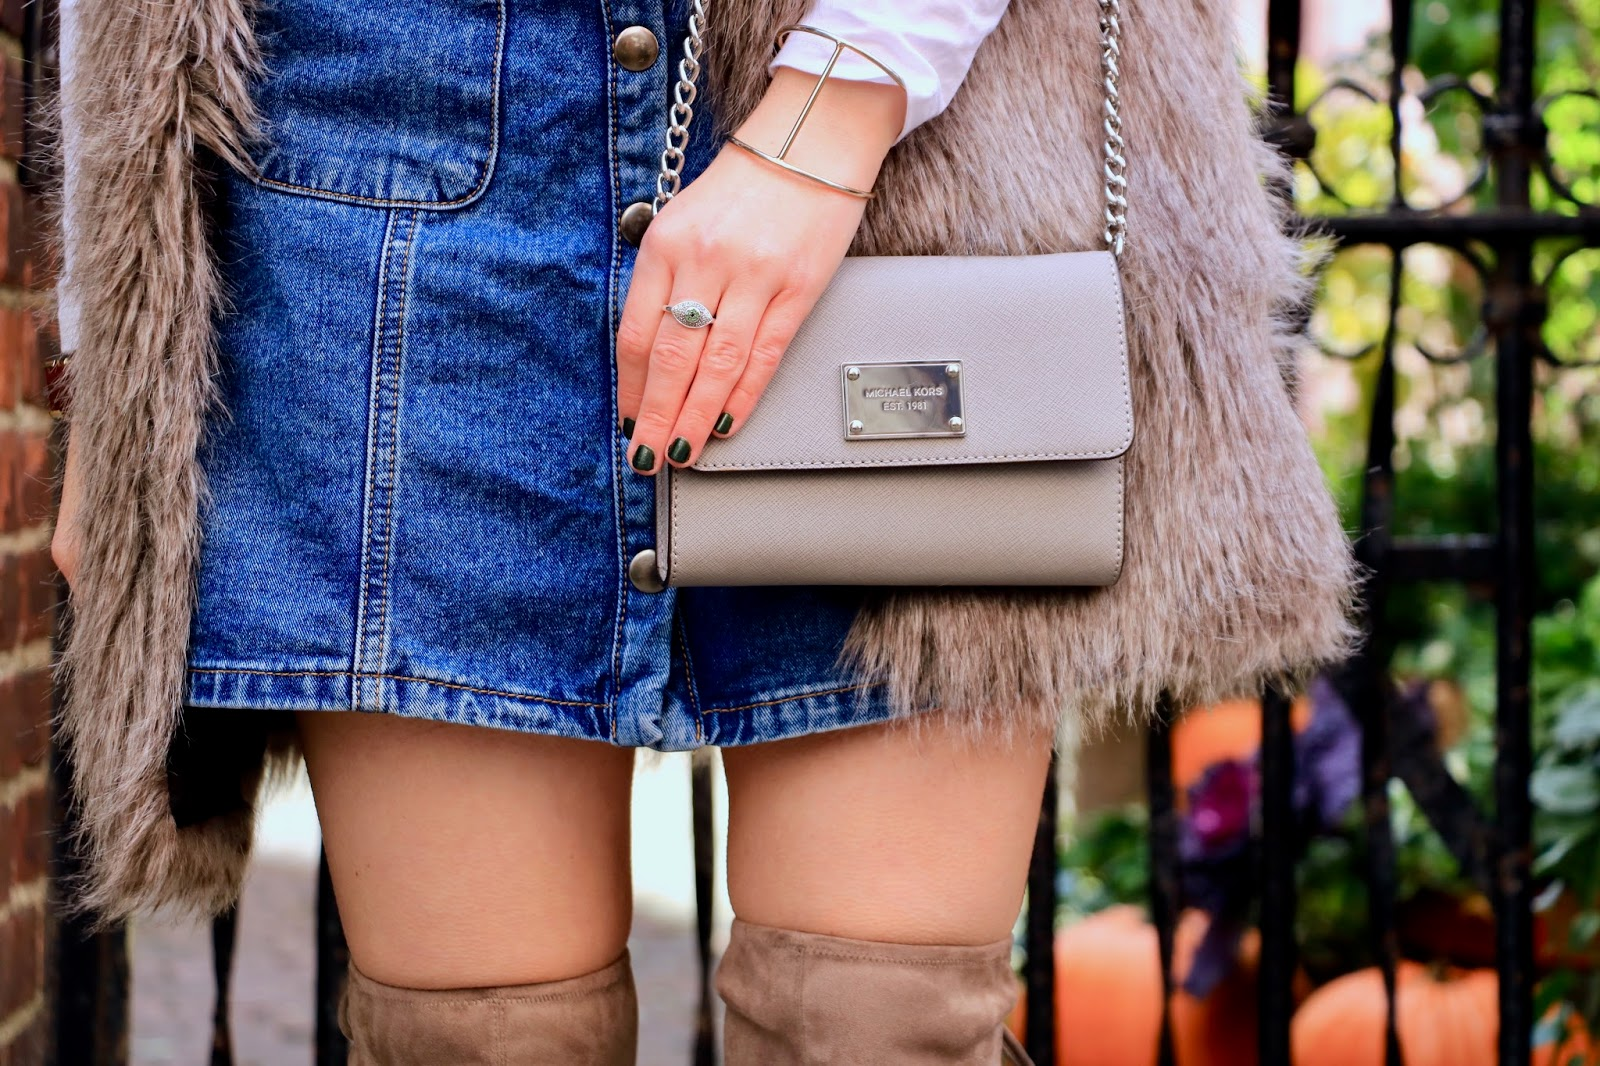 Nyc fashion blogger Kathleen Harper wearing a gray Michael Kors purse